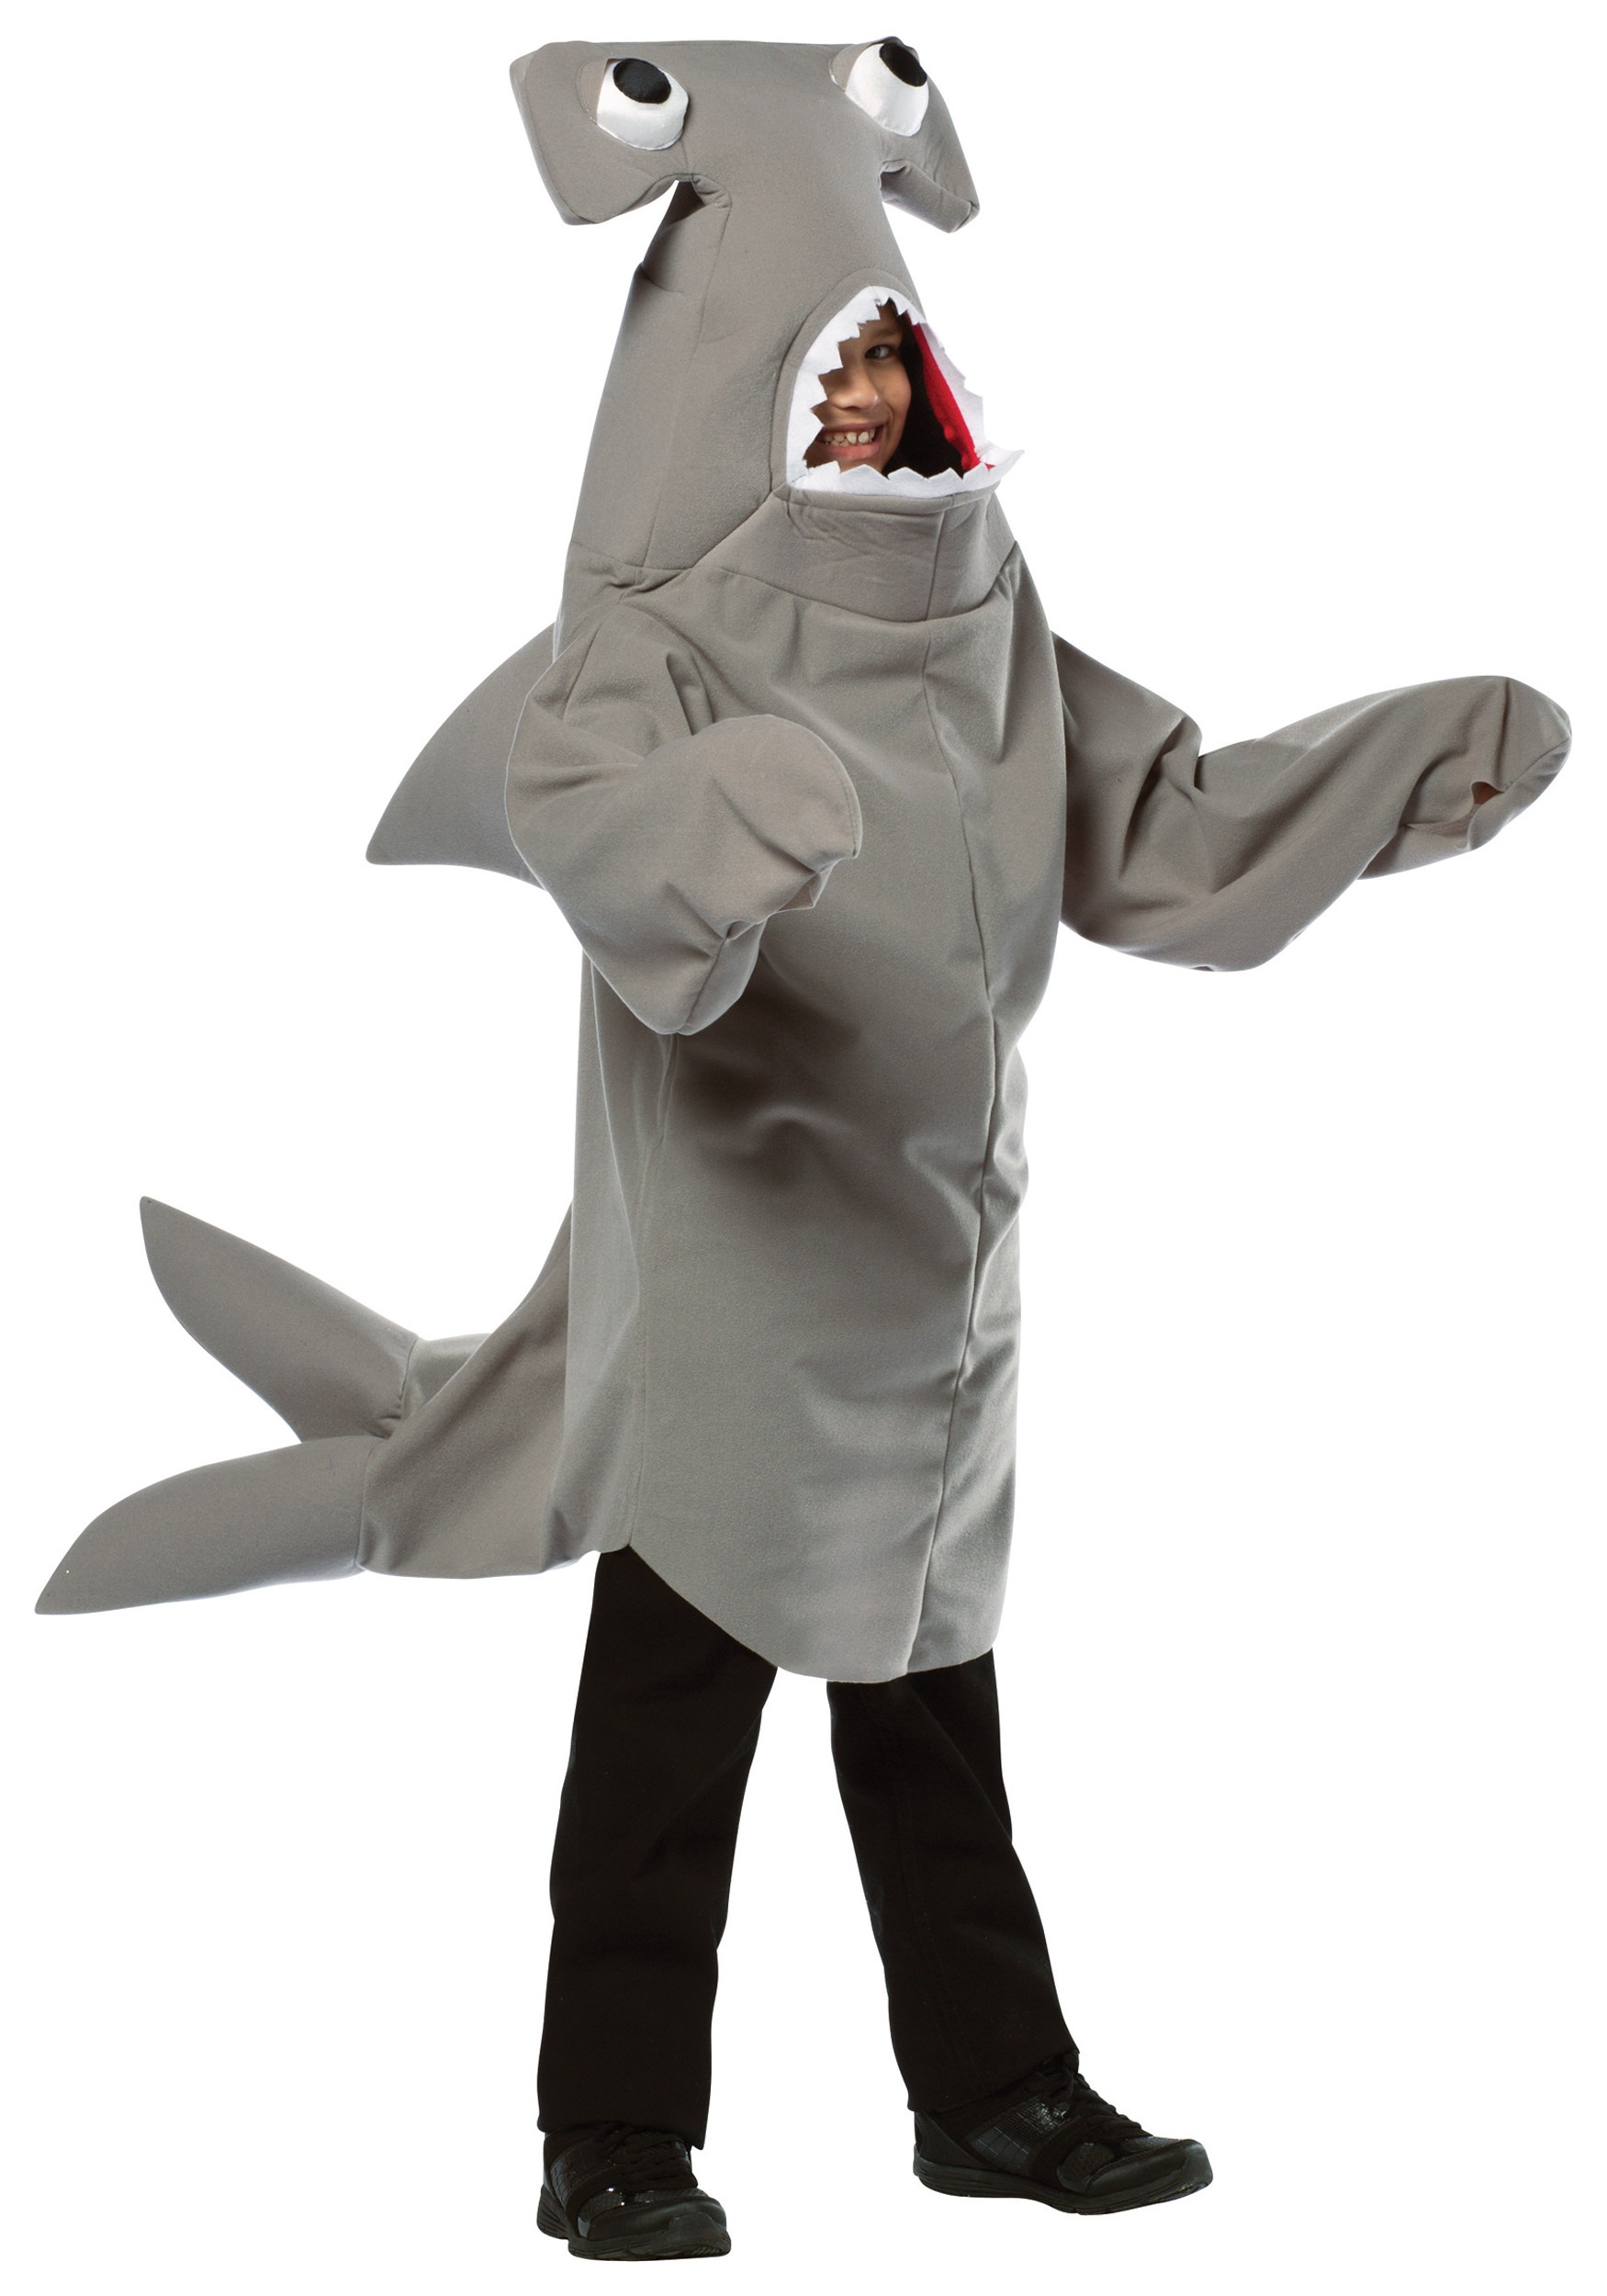 sc 1 st  Halloween Costumes : shark dress costume  - Germanpascual.Com